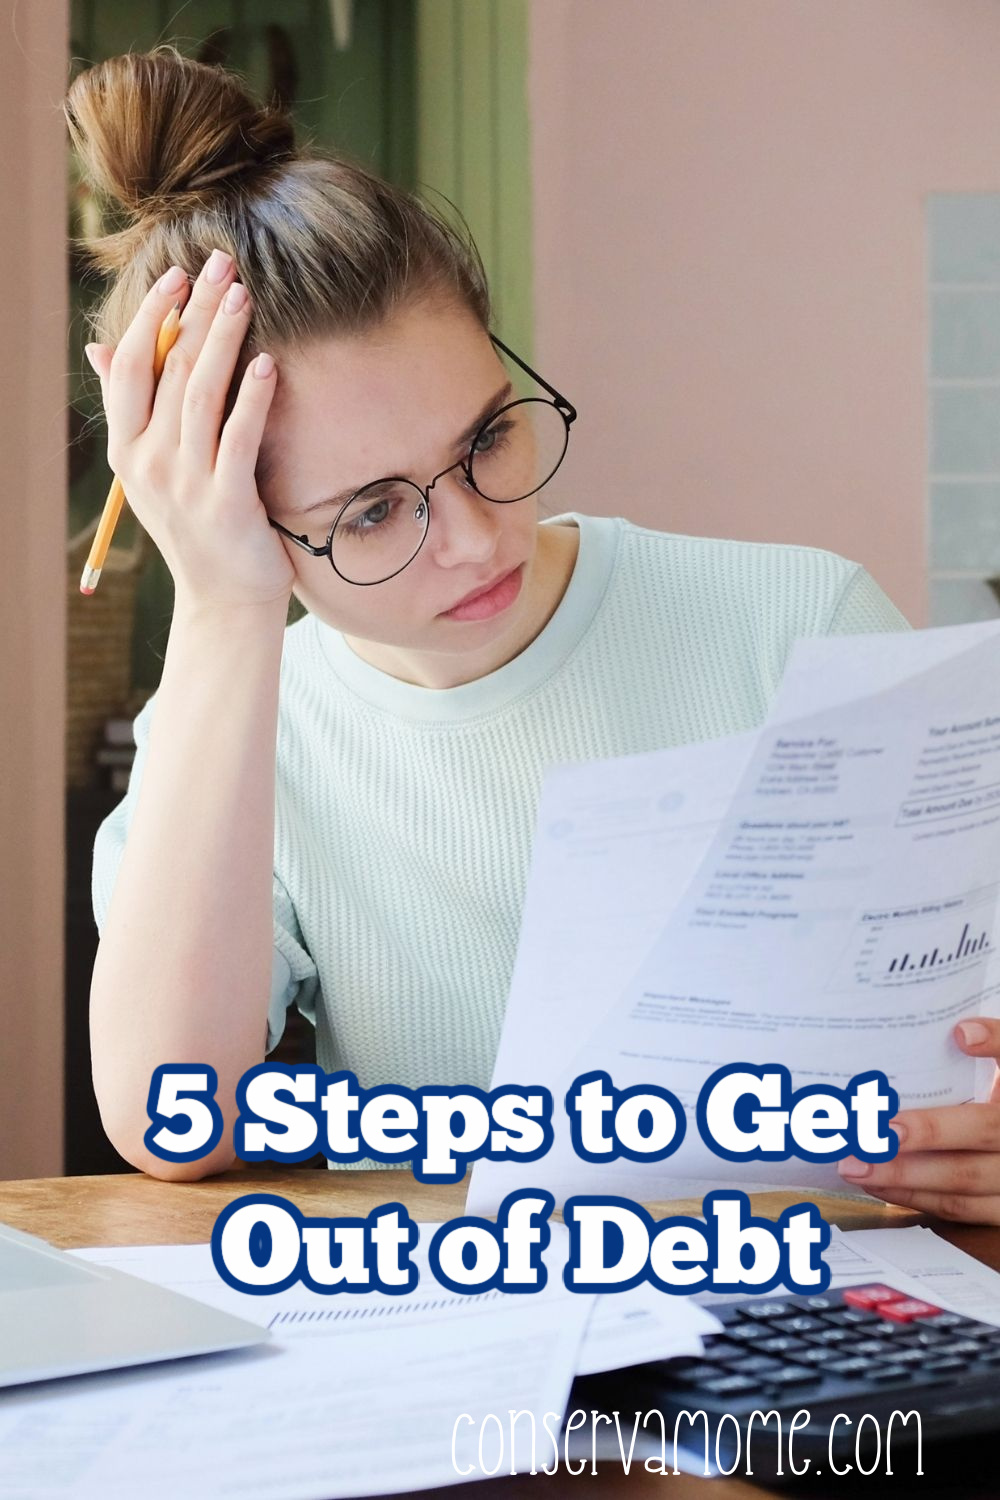 5 Steps to Get Out of Debt